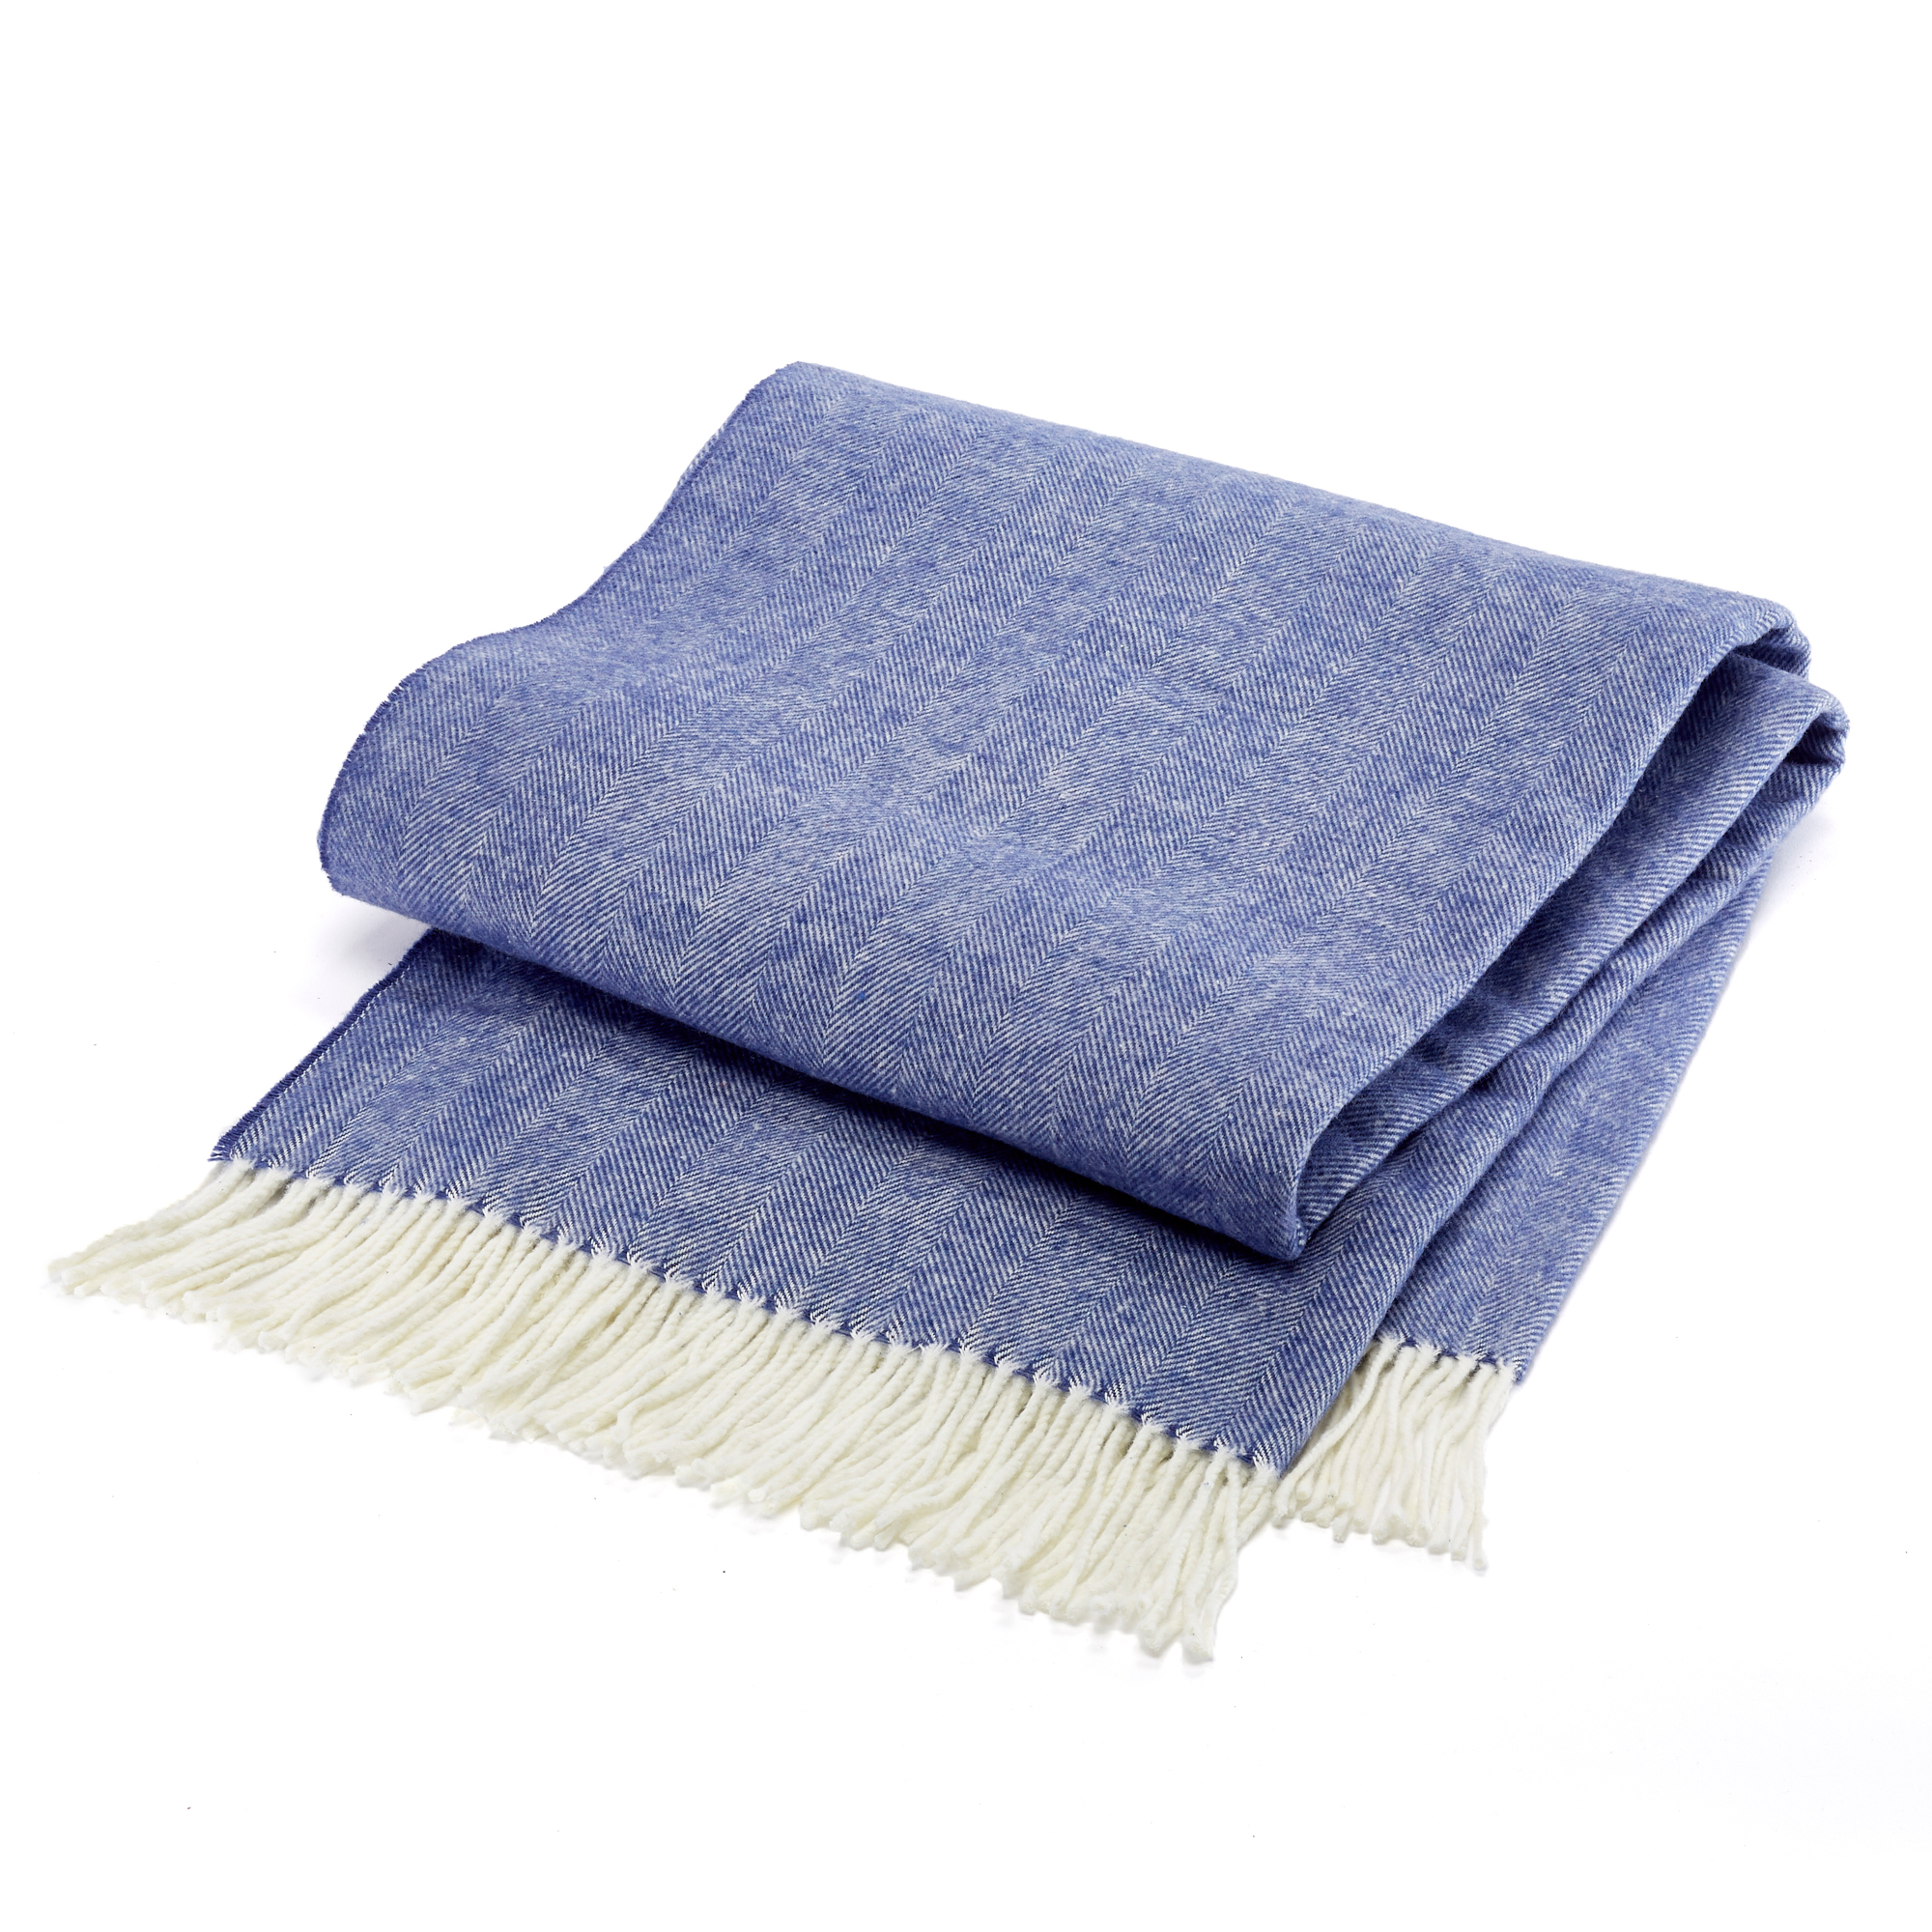 Herringbone Throw, Indigo